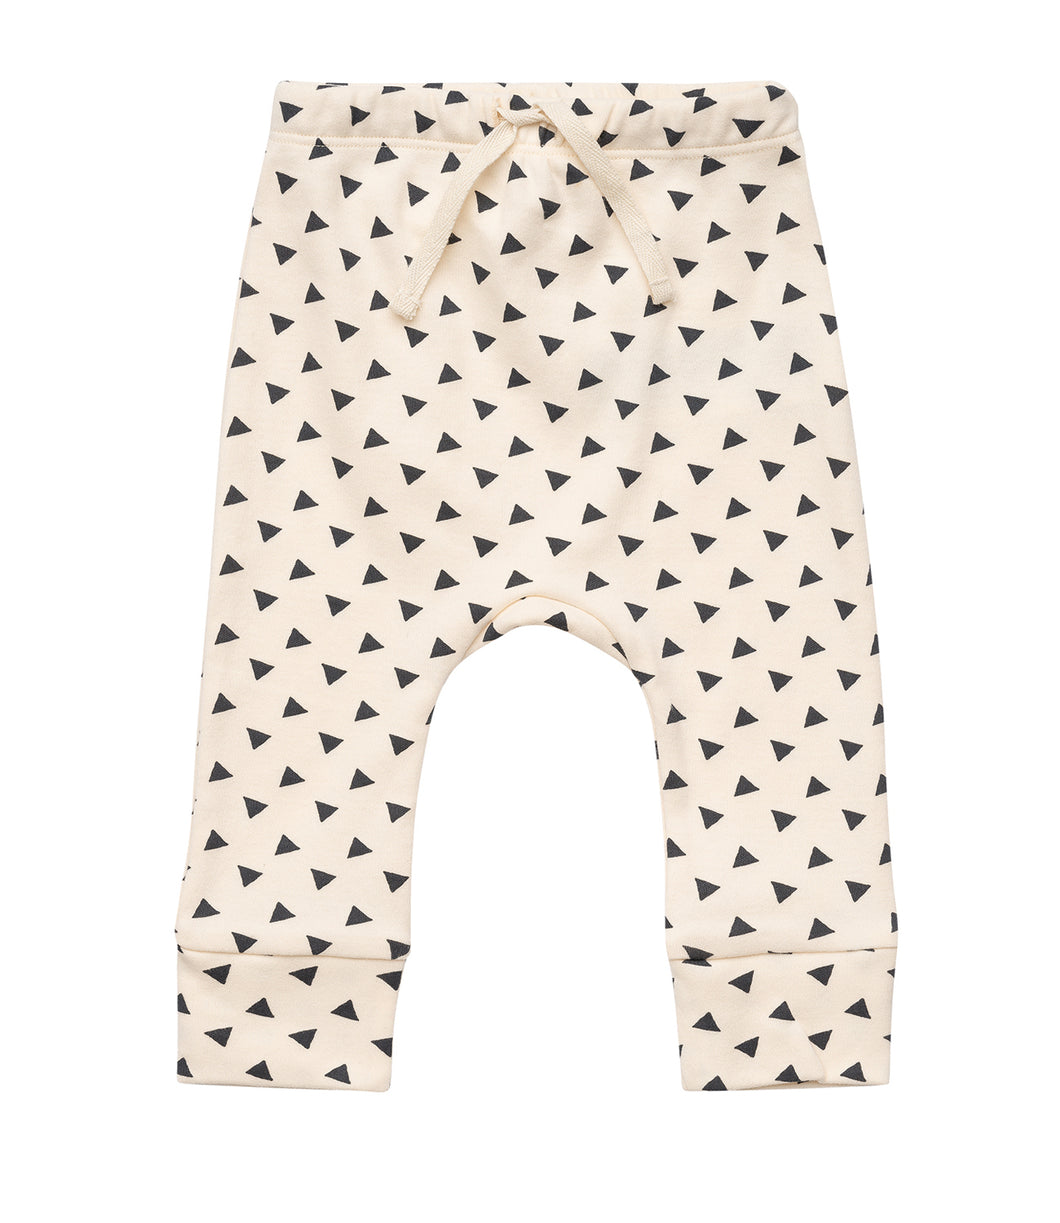 Martha & Marlo Baby Drawstring Pant Organic Cotton Sketch Print Cream